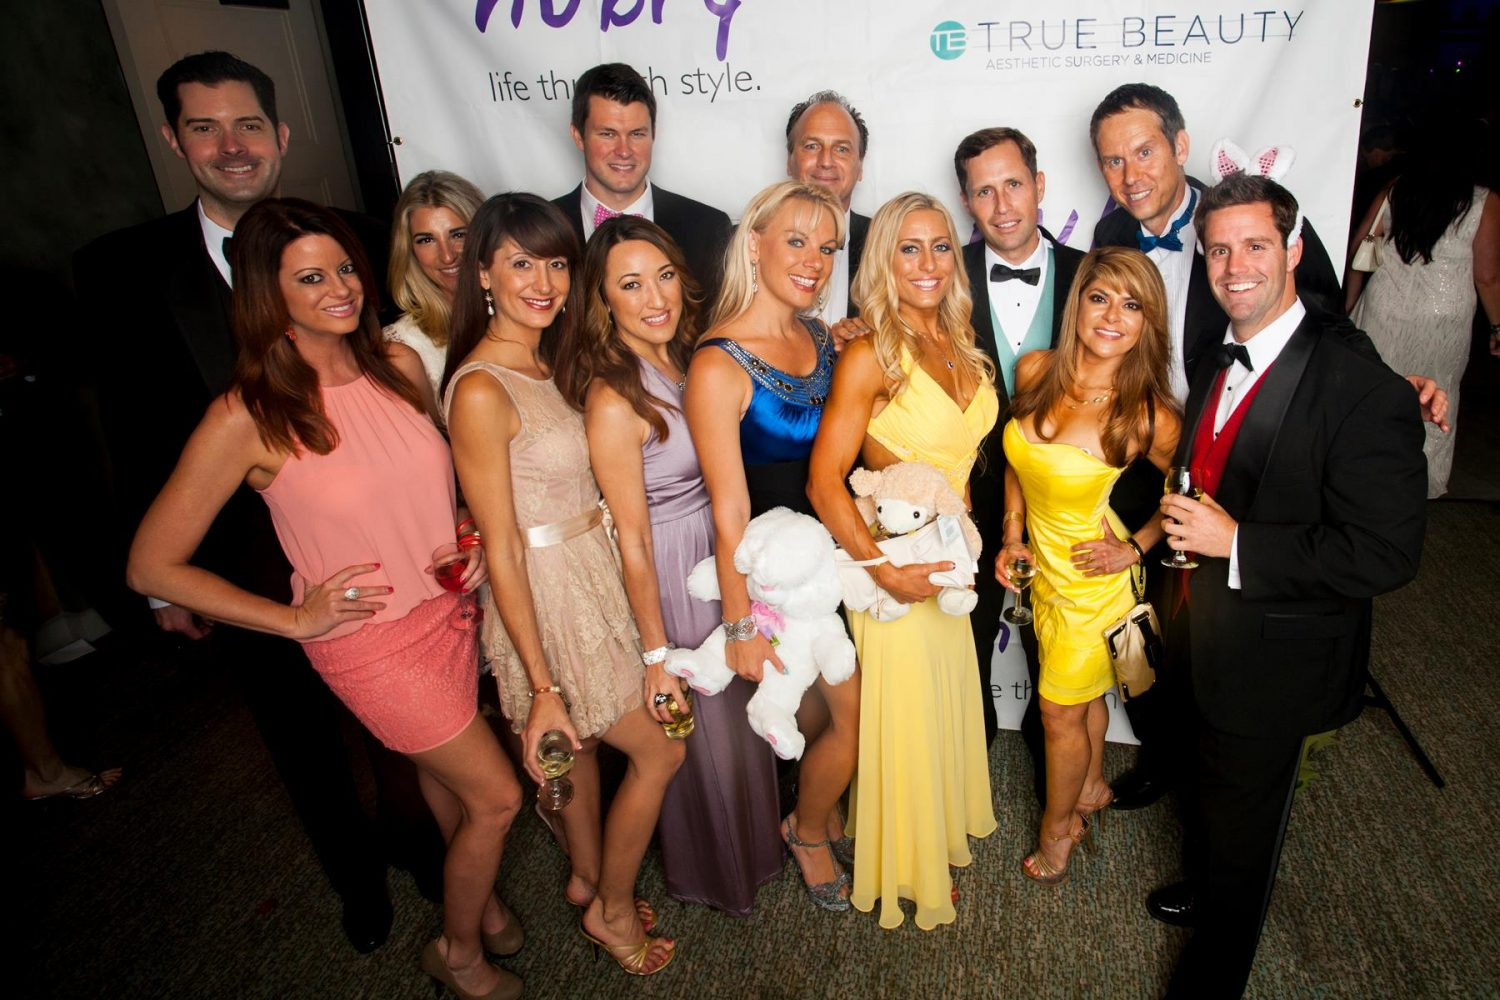 The Romance dating show cast 10 Most Stylish San Diego Guests At Easter Gala 2014 11